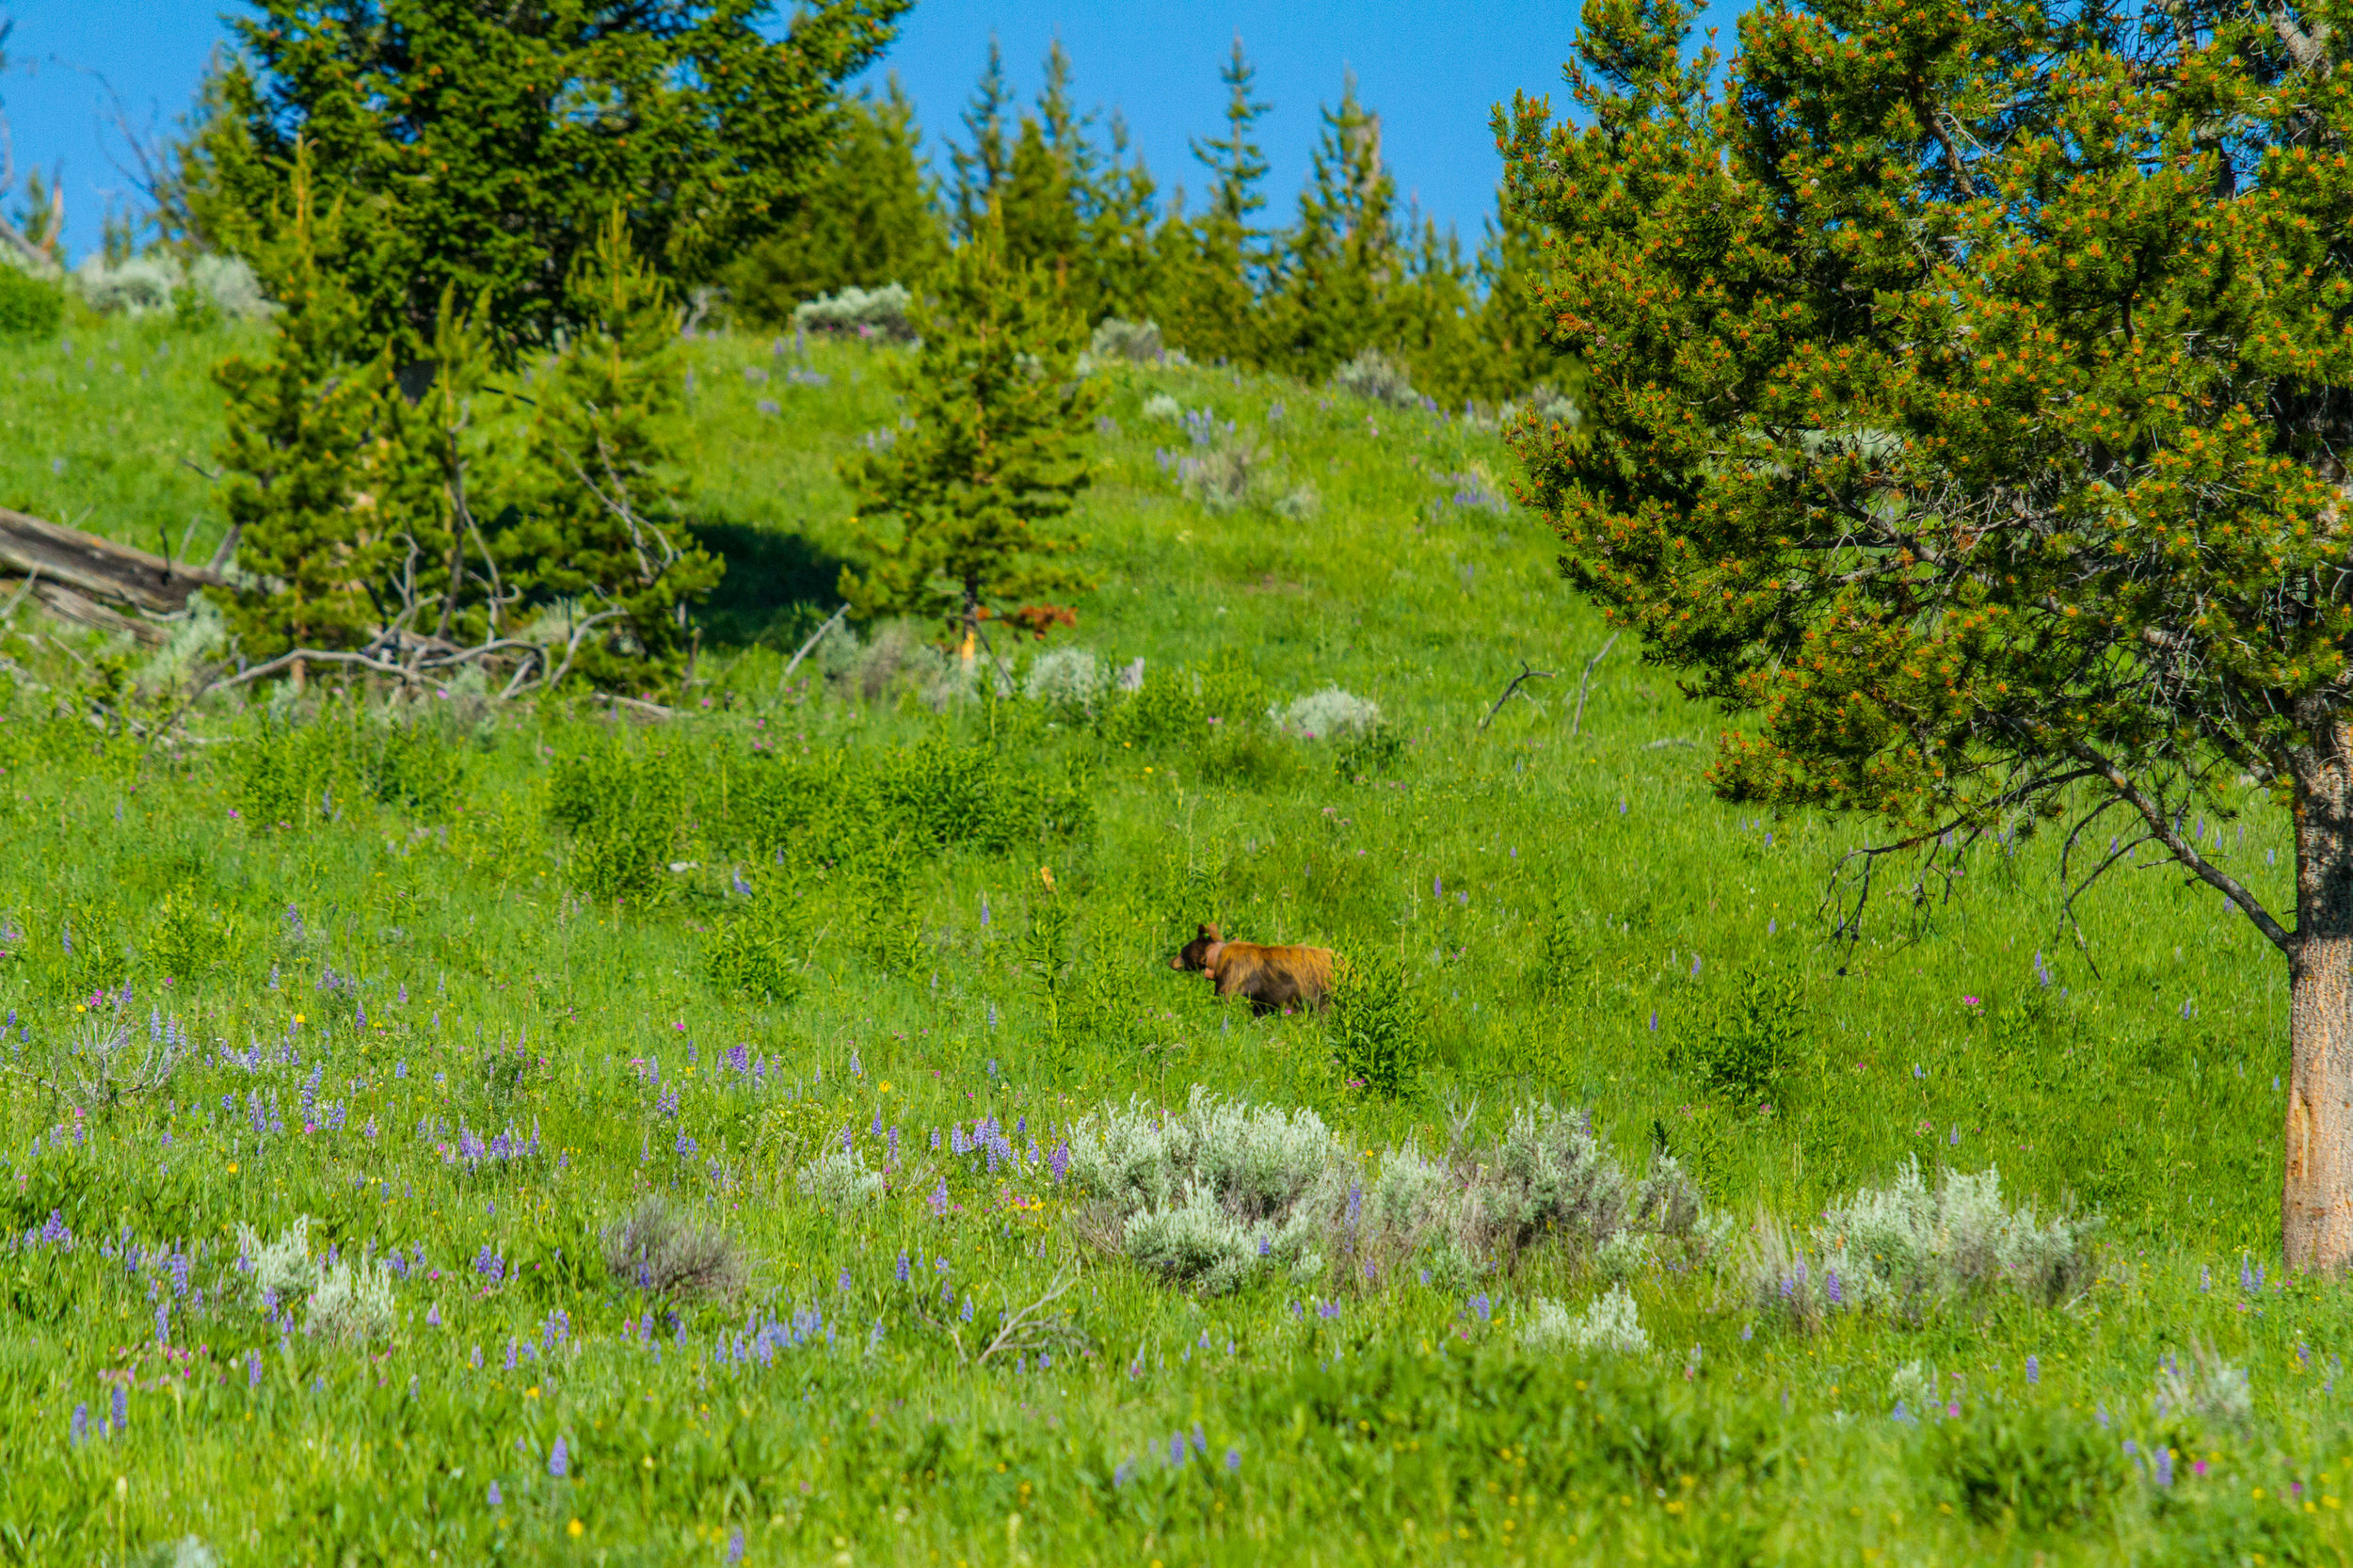 Lamar Valley, Yellowstone National Park, Image # 5135